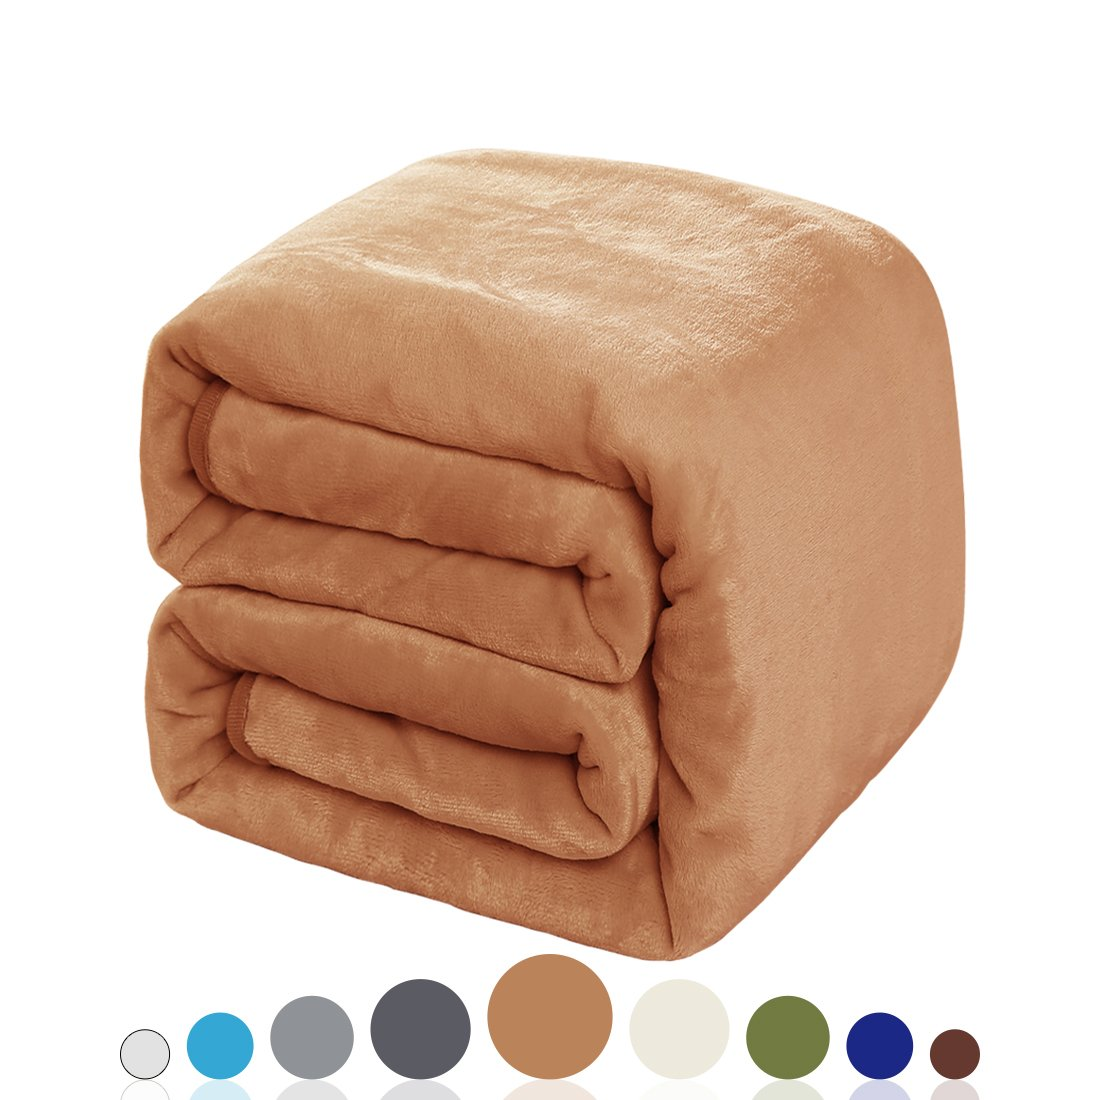 Balichun Luxury 330 GSM Fleece Blanket Super Soft Warm Fuzzy Lightweight Bed or Couch Blanket